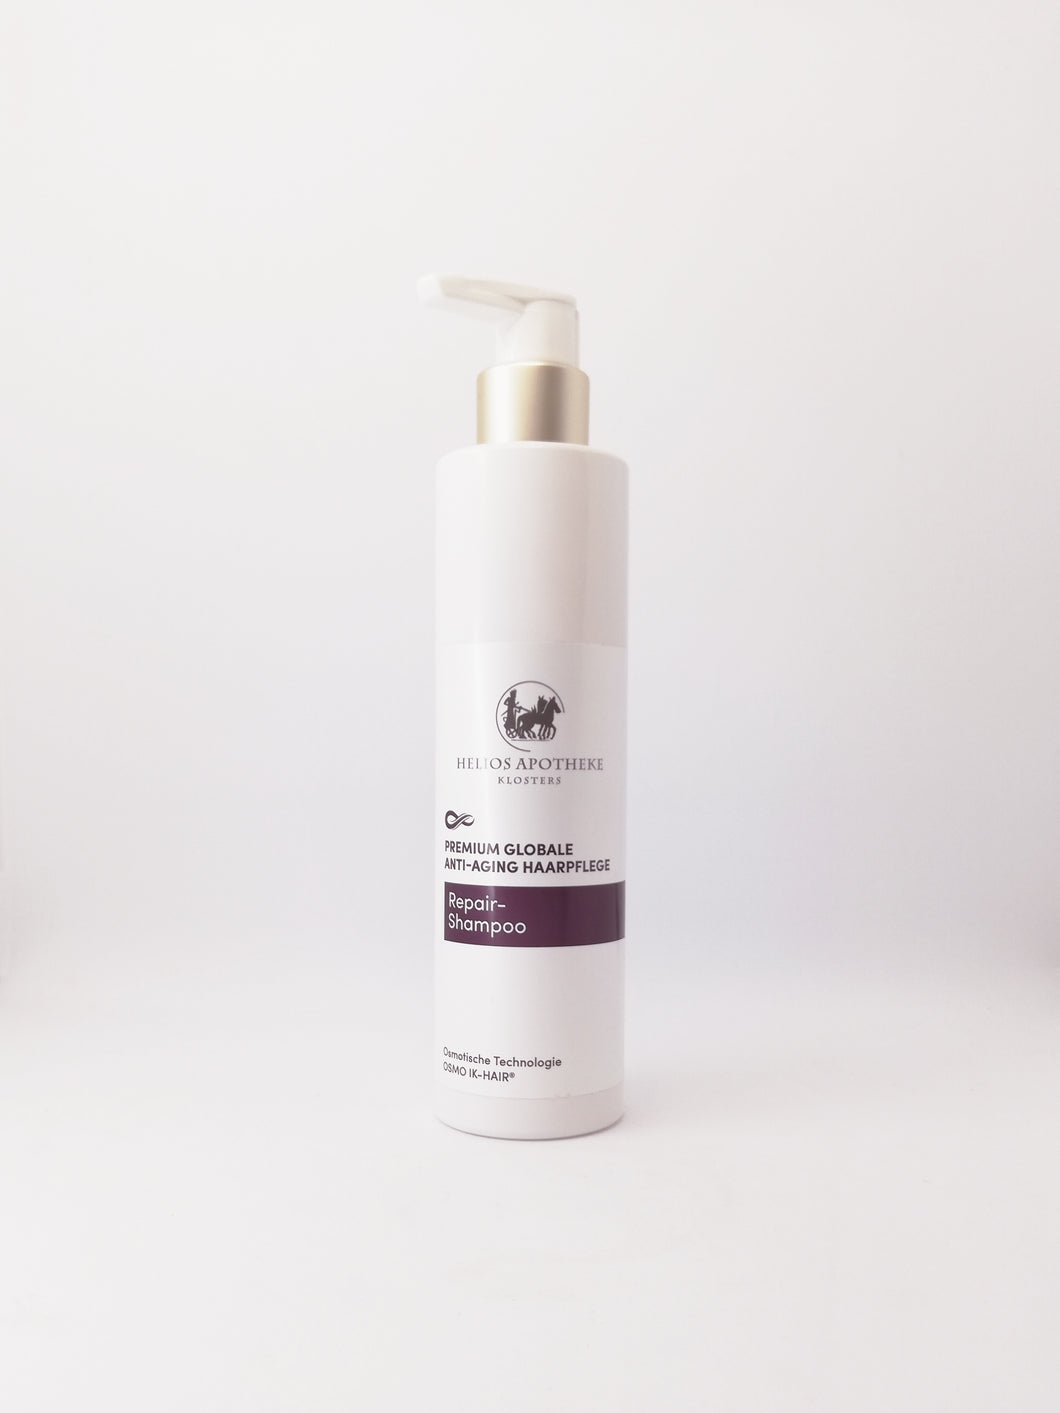 Repair Shampoo mit Osmo IK-HAIR®